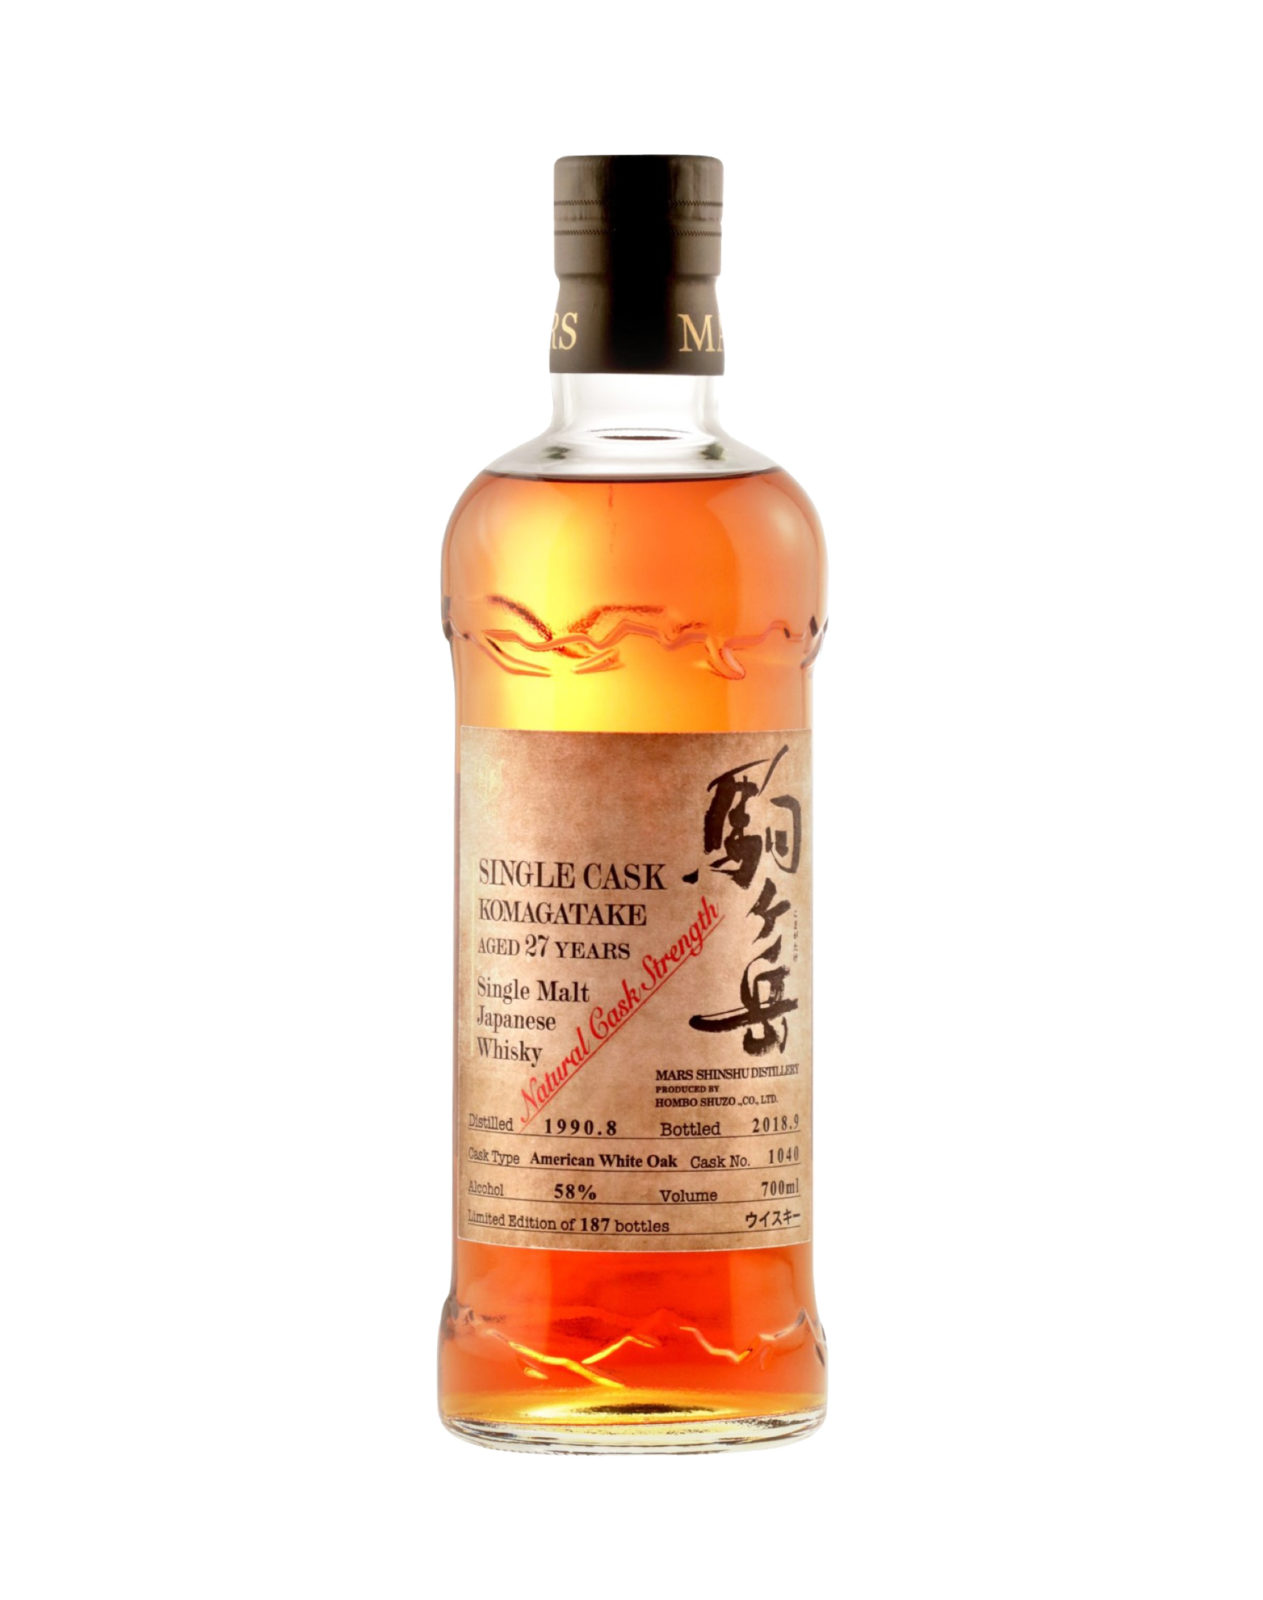 Mars Komagatake Single Cask Single Malt 1040 Japanese Whisky